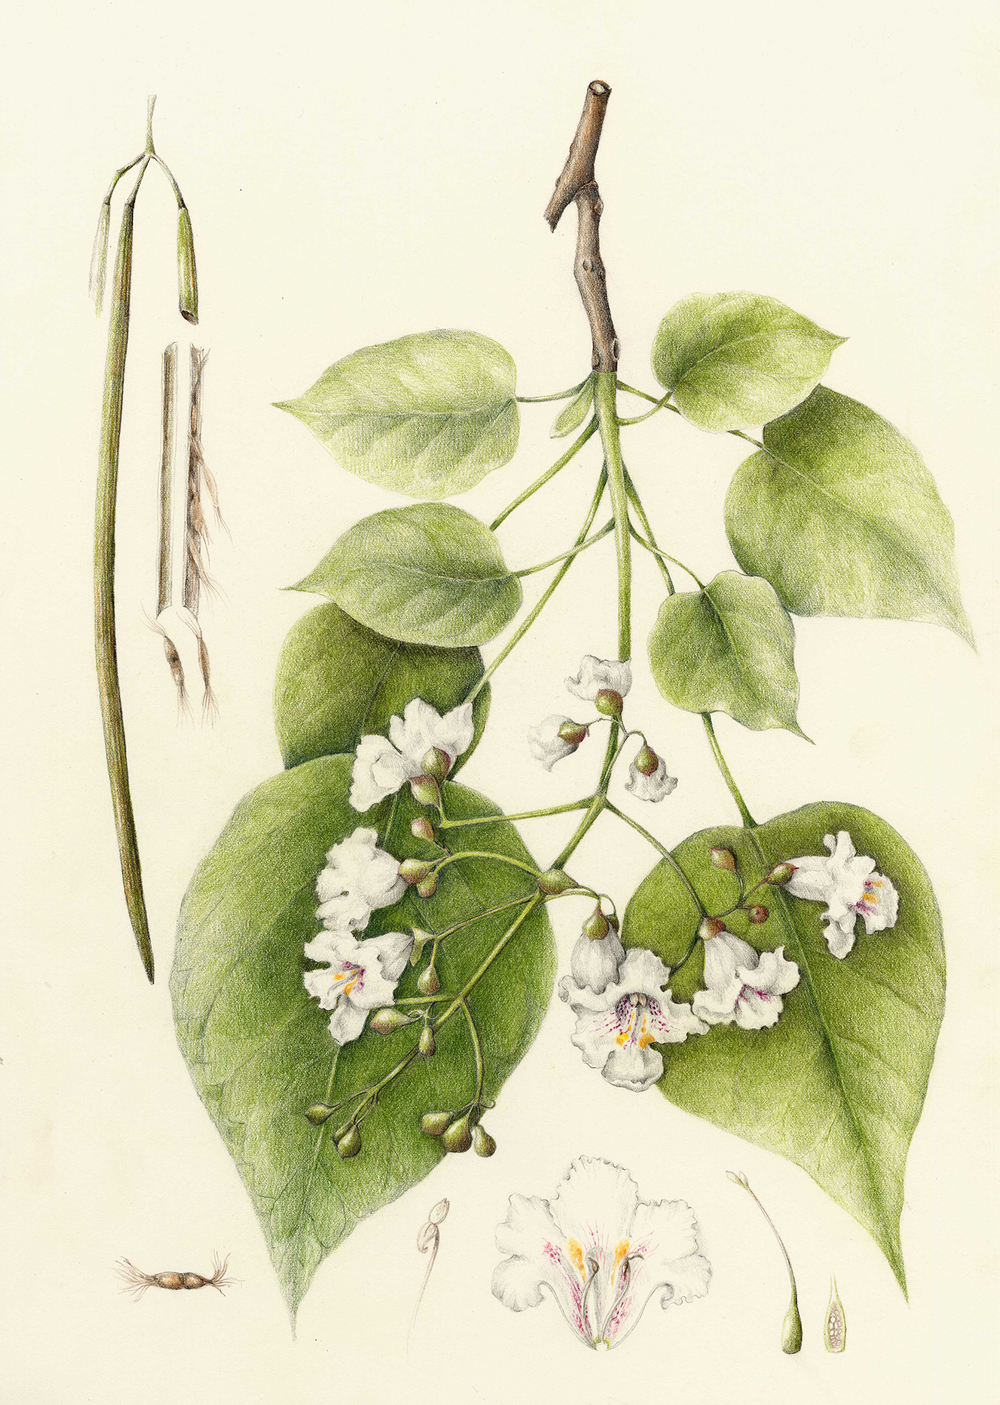 Catalpa Tree - Catalpa speciosa